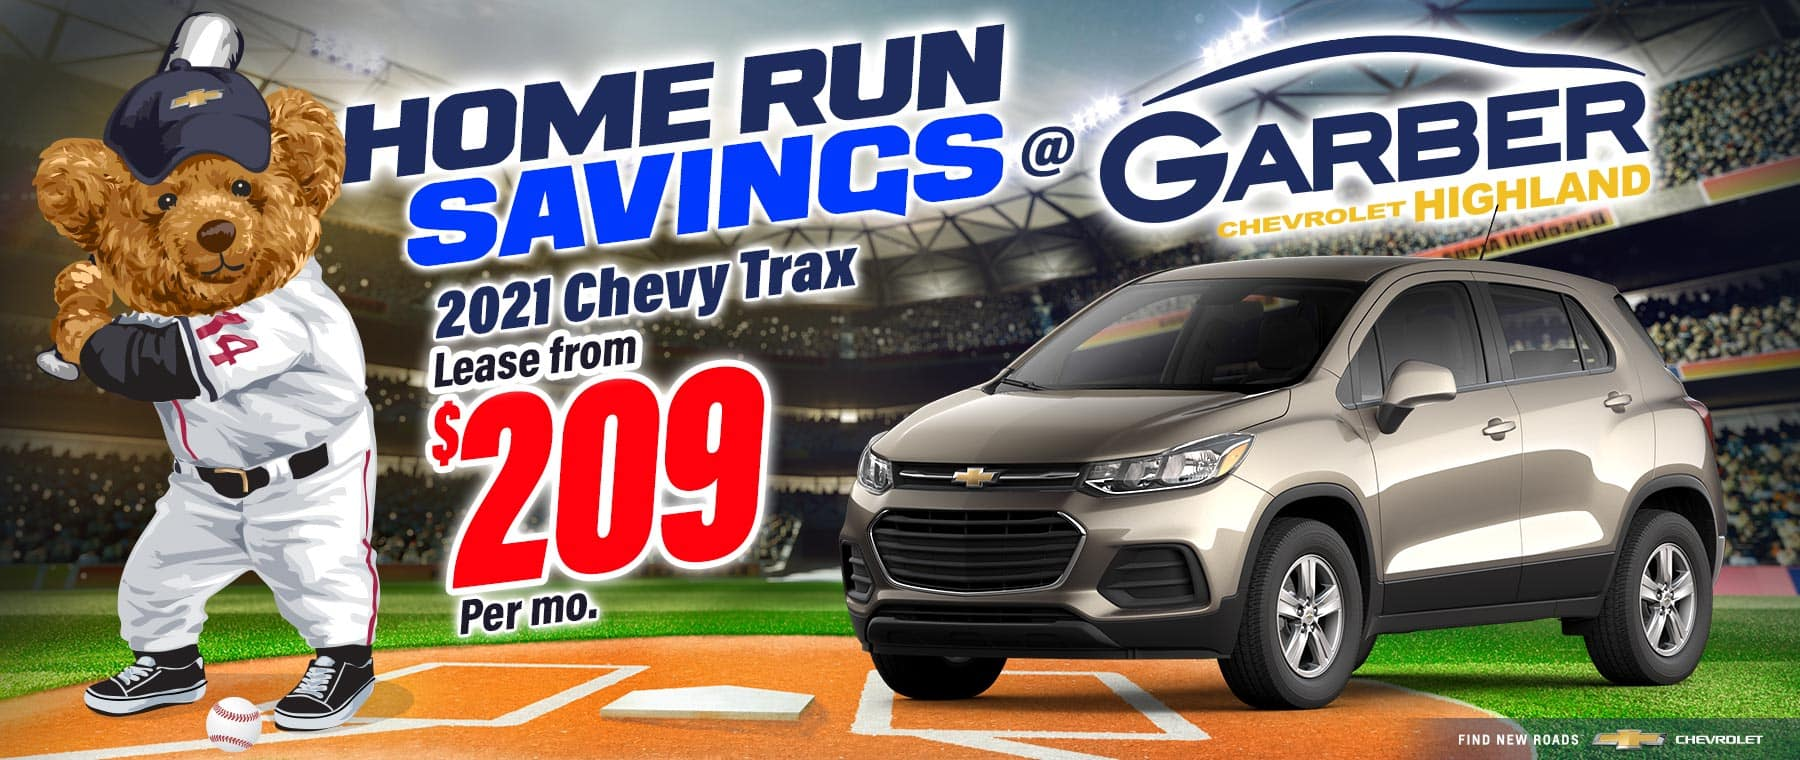 2021 Chevy Trax - Lease from $209 per month